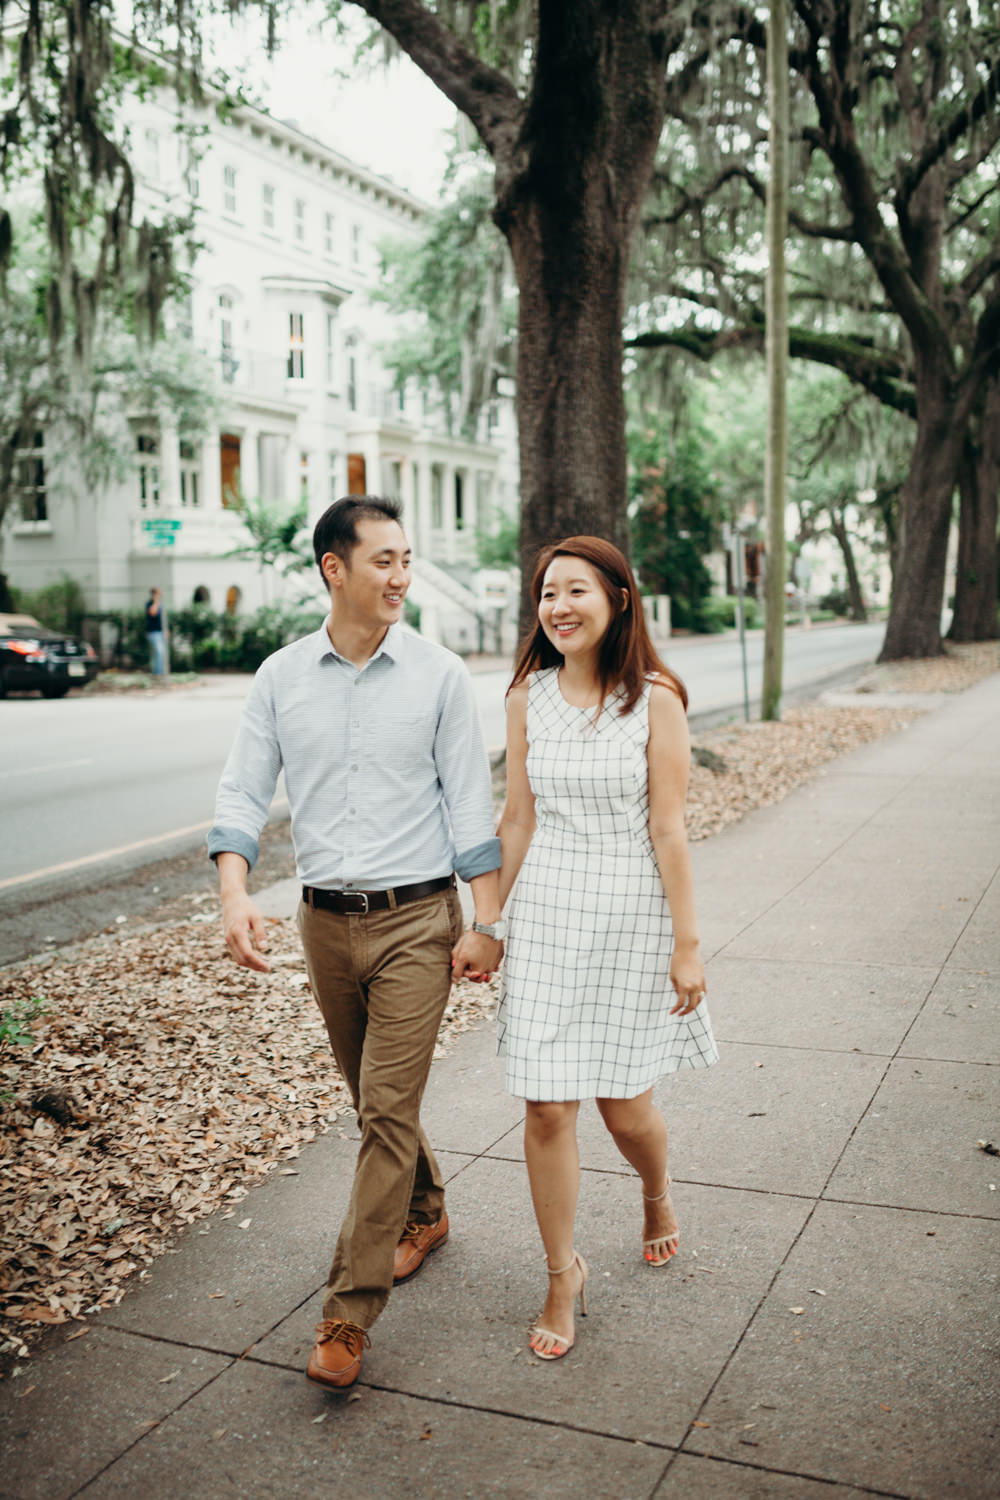 savannahengagement-2024.jpg